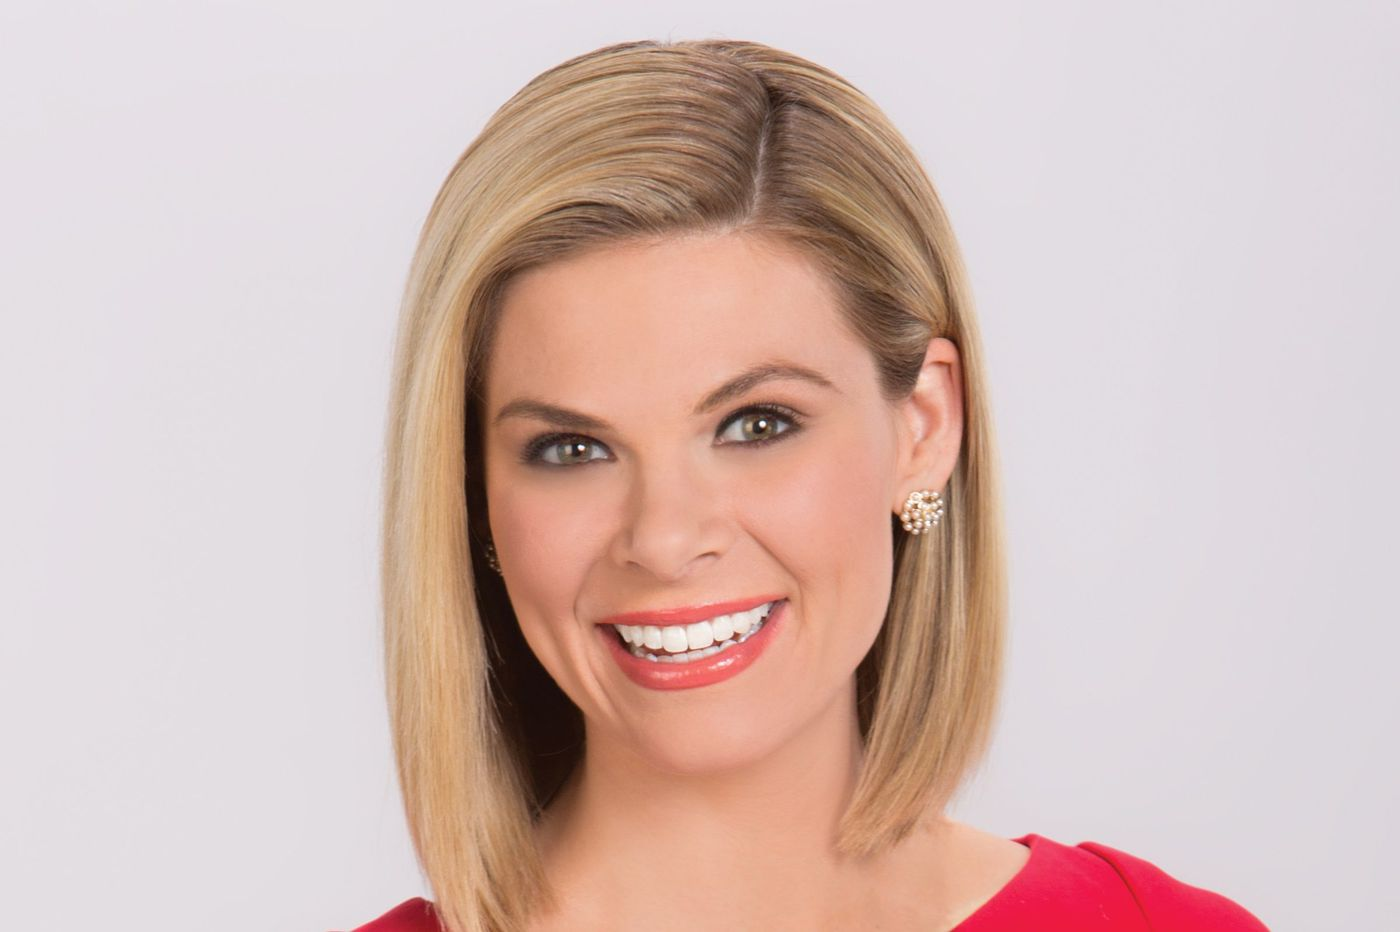 CBS 3's Jessica Dean to guest co-host 'The Talk' on Tuesday